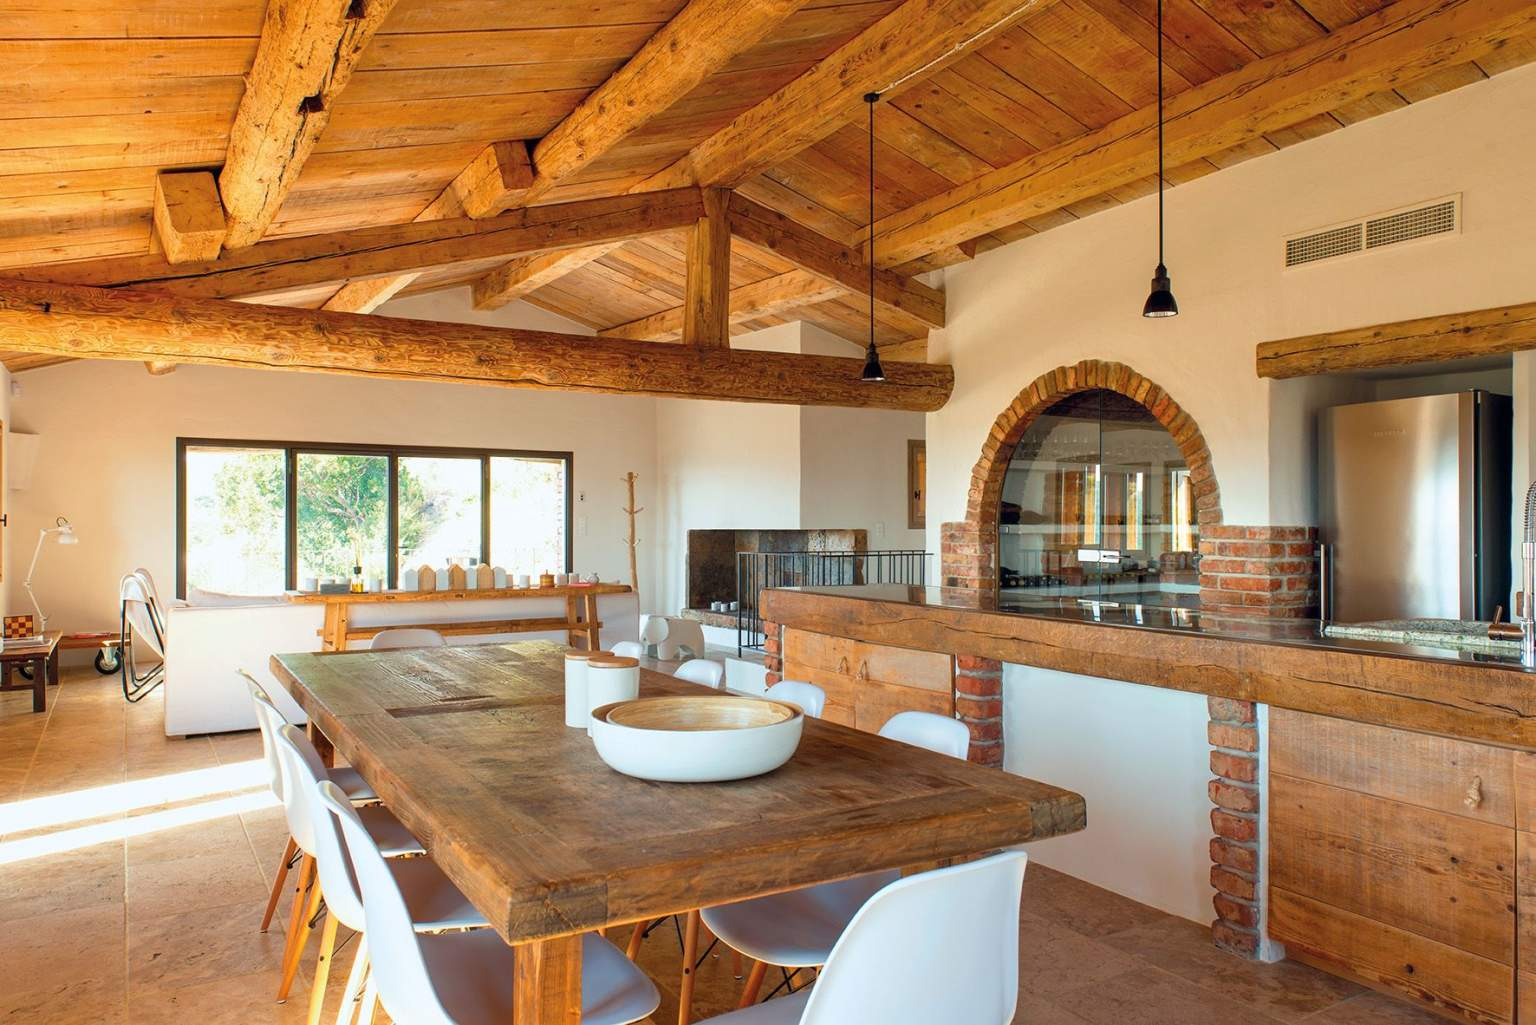 Stone and wood interiors